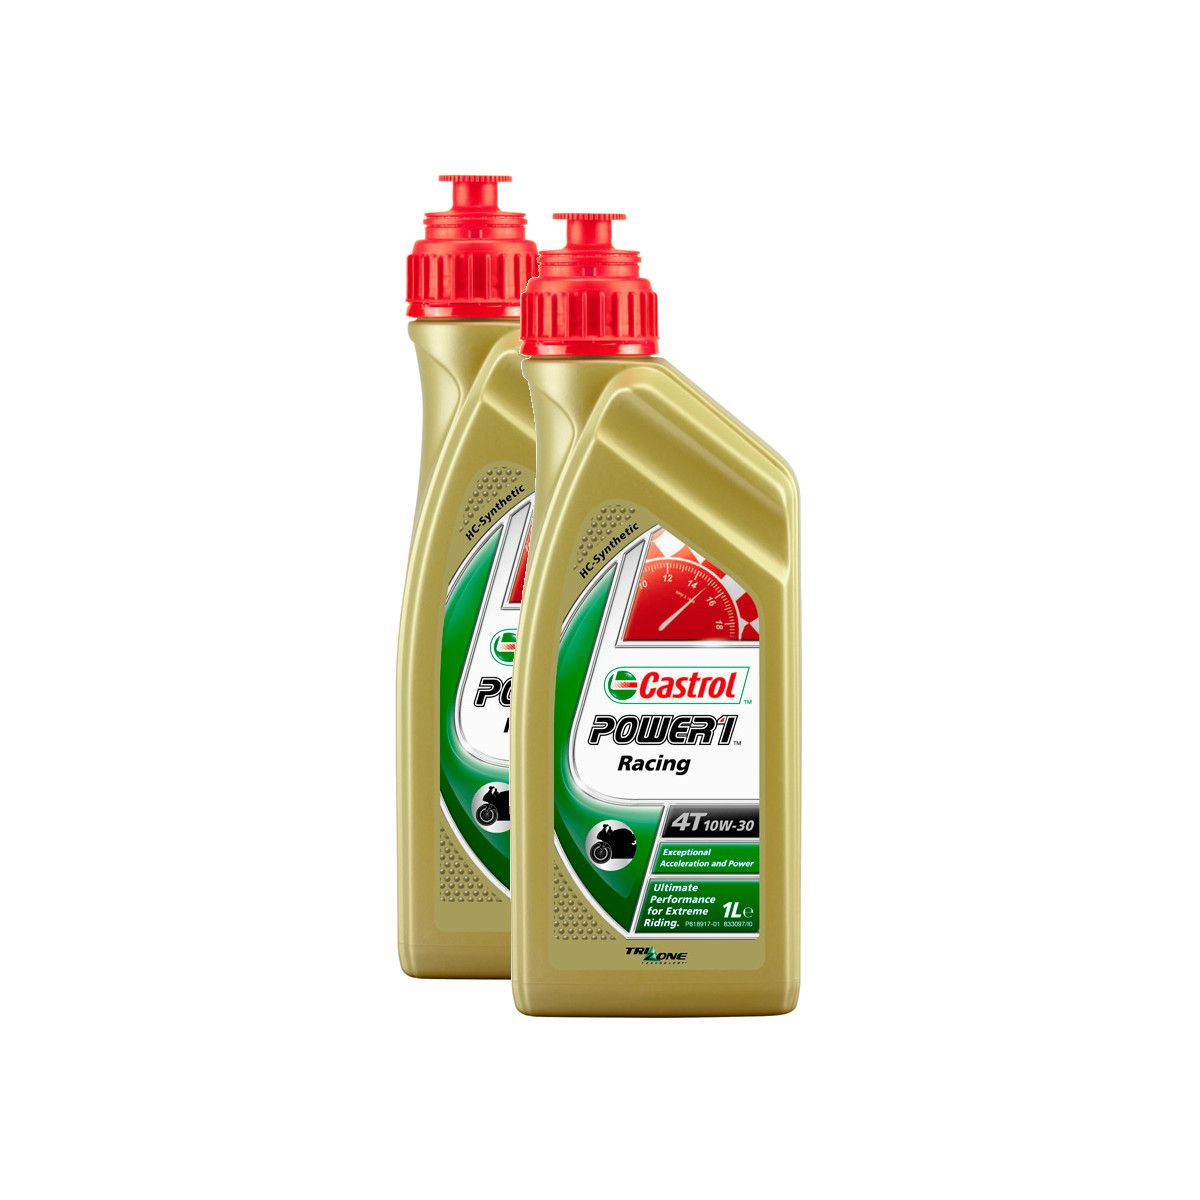 Castrol power 1 racing 2t fully synthetic heavy duty industrial battery chargers